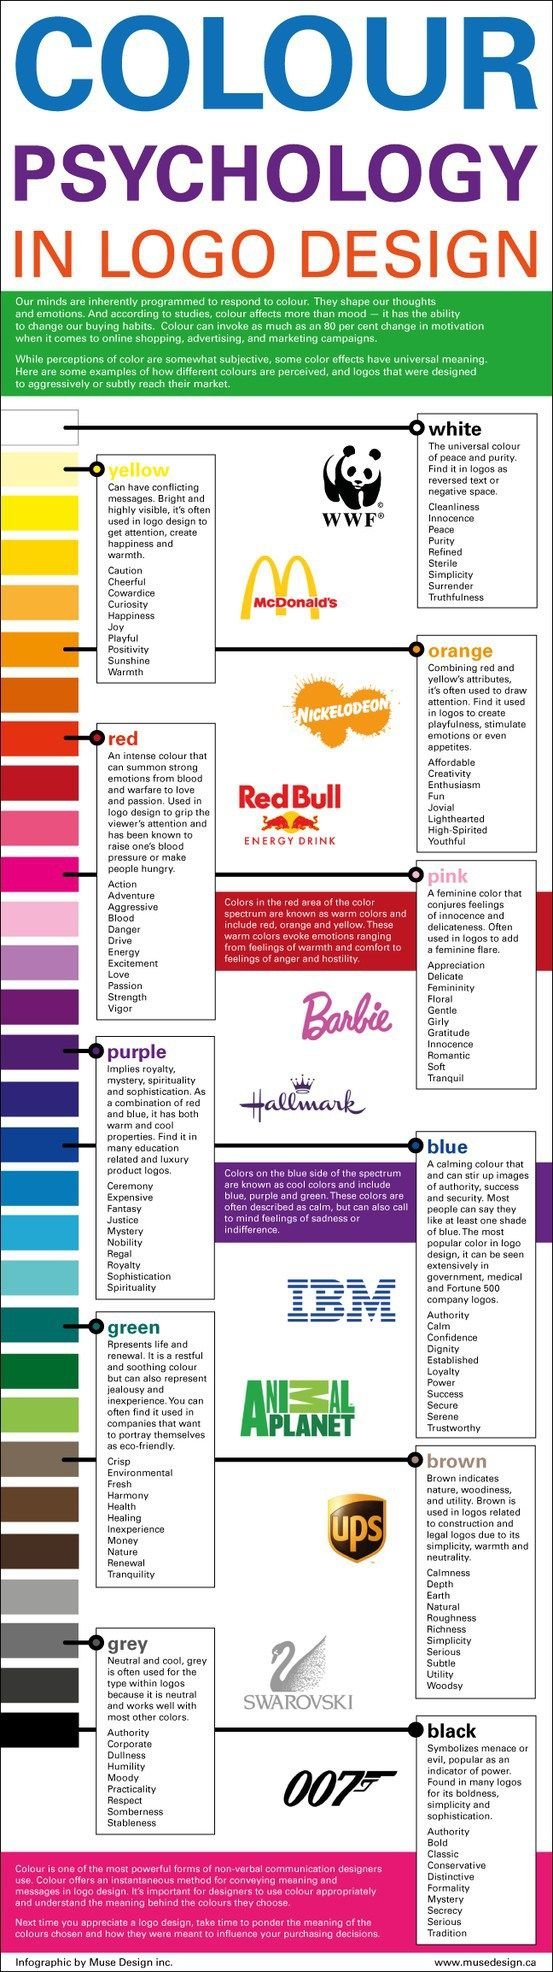 Most of the recognisable logos we see everyday aren't the colour they are because the designers liked it. Colours are chosen very carefully to have a psychological effect on a person when they see it. Companies like Facebook will go through hundreds of shades of blue just to get the colour that has the most… #OsnLikesIt #ForInspiration #Infographic